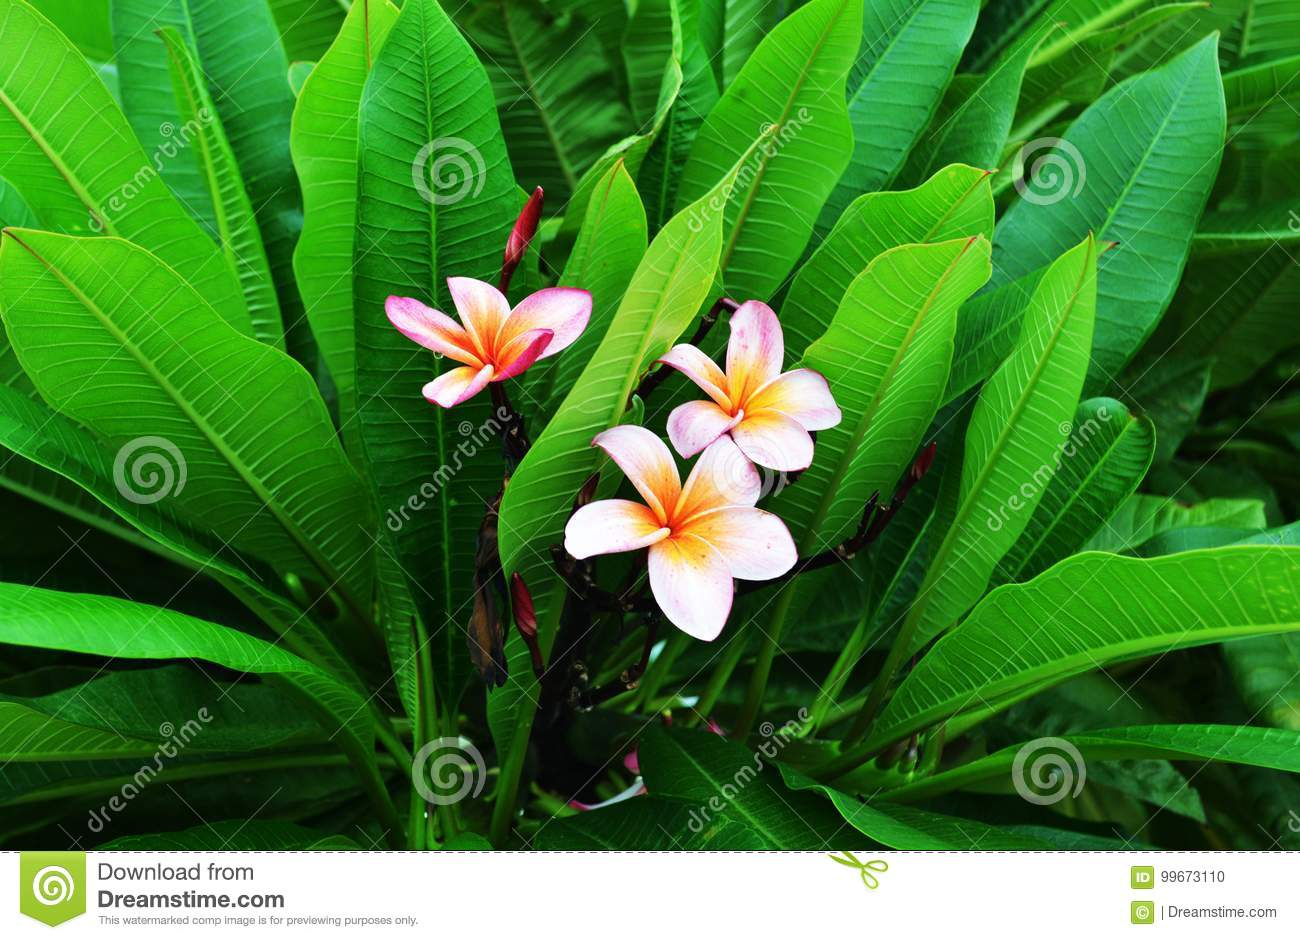 Beautiful flowers in chandigarh india stock photo image of india beautiful flowers in chandigarh india izmirmasajfo